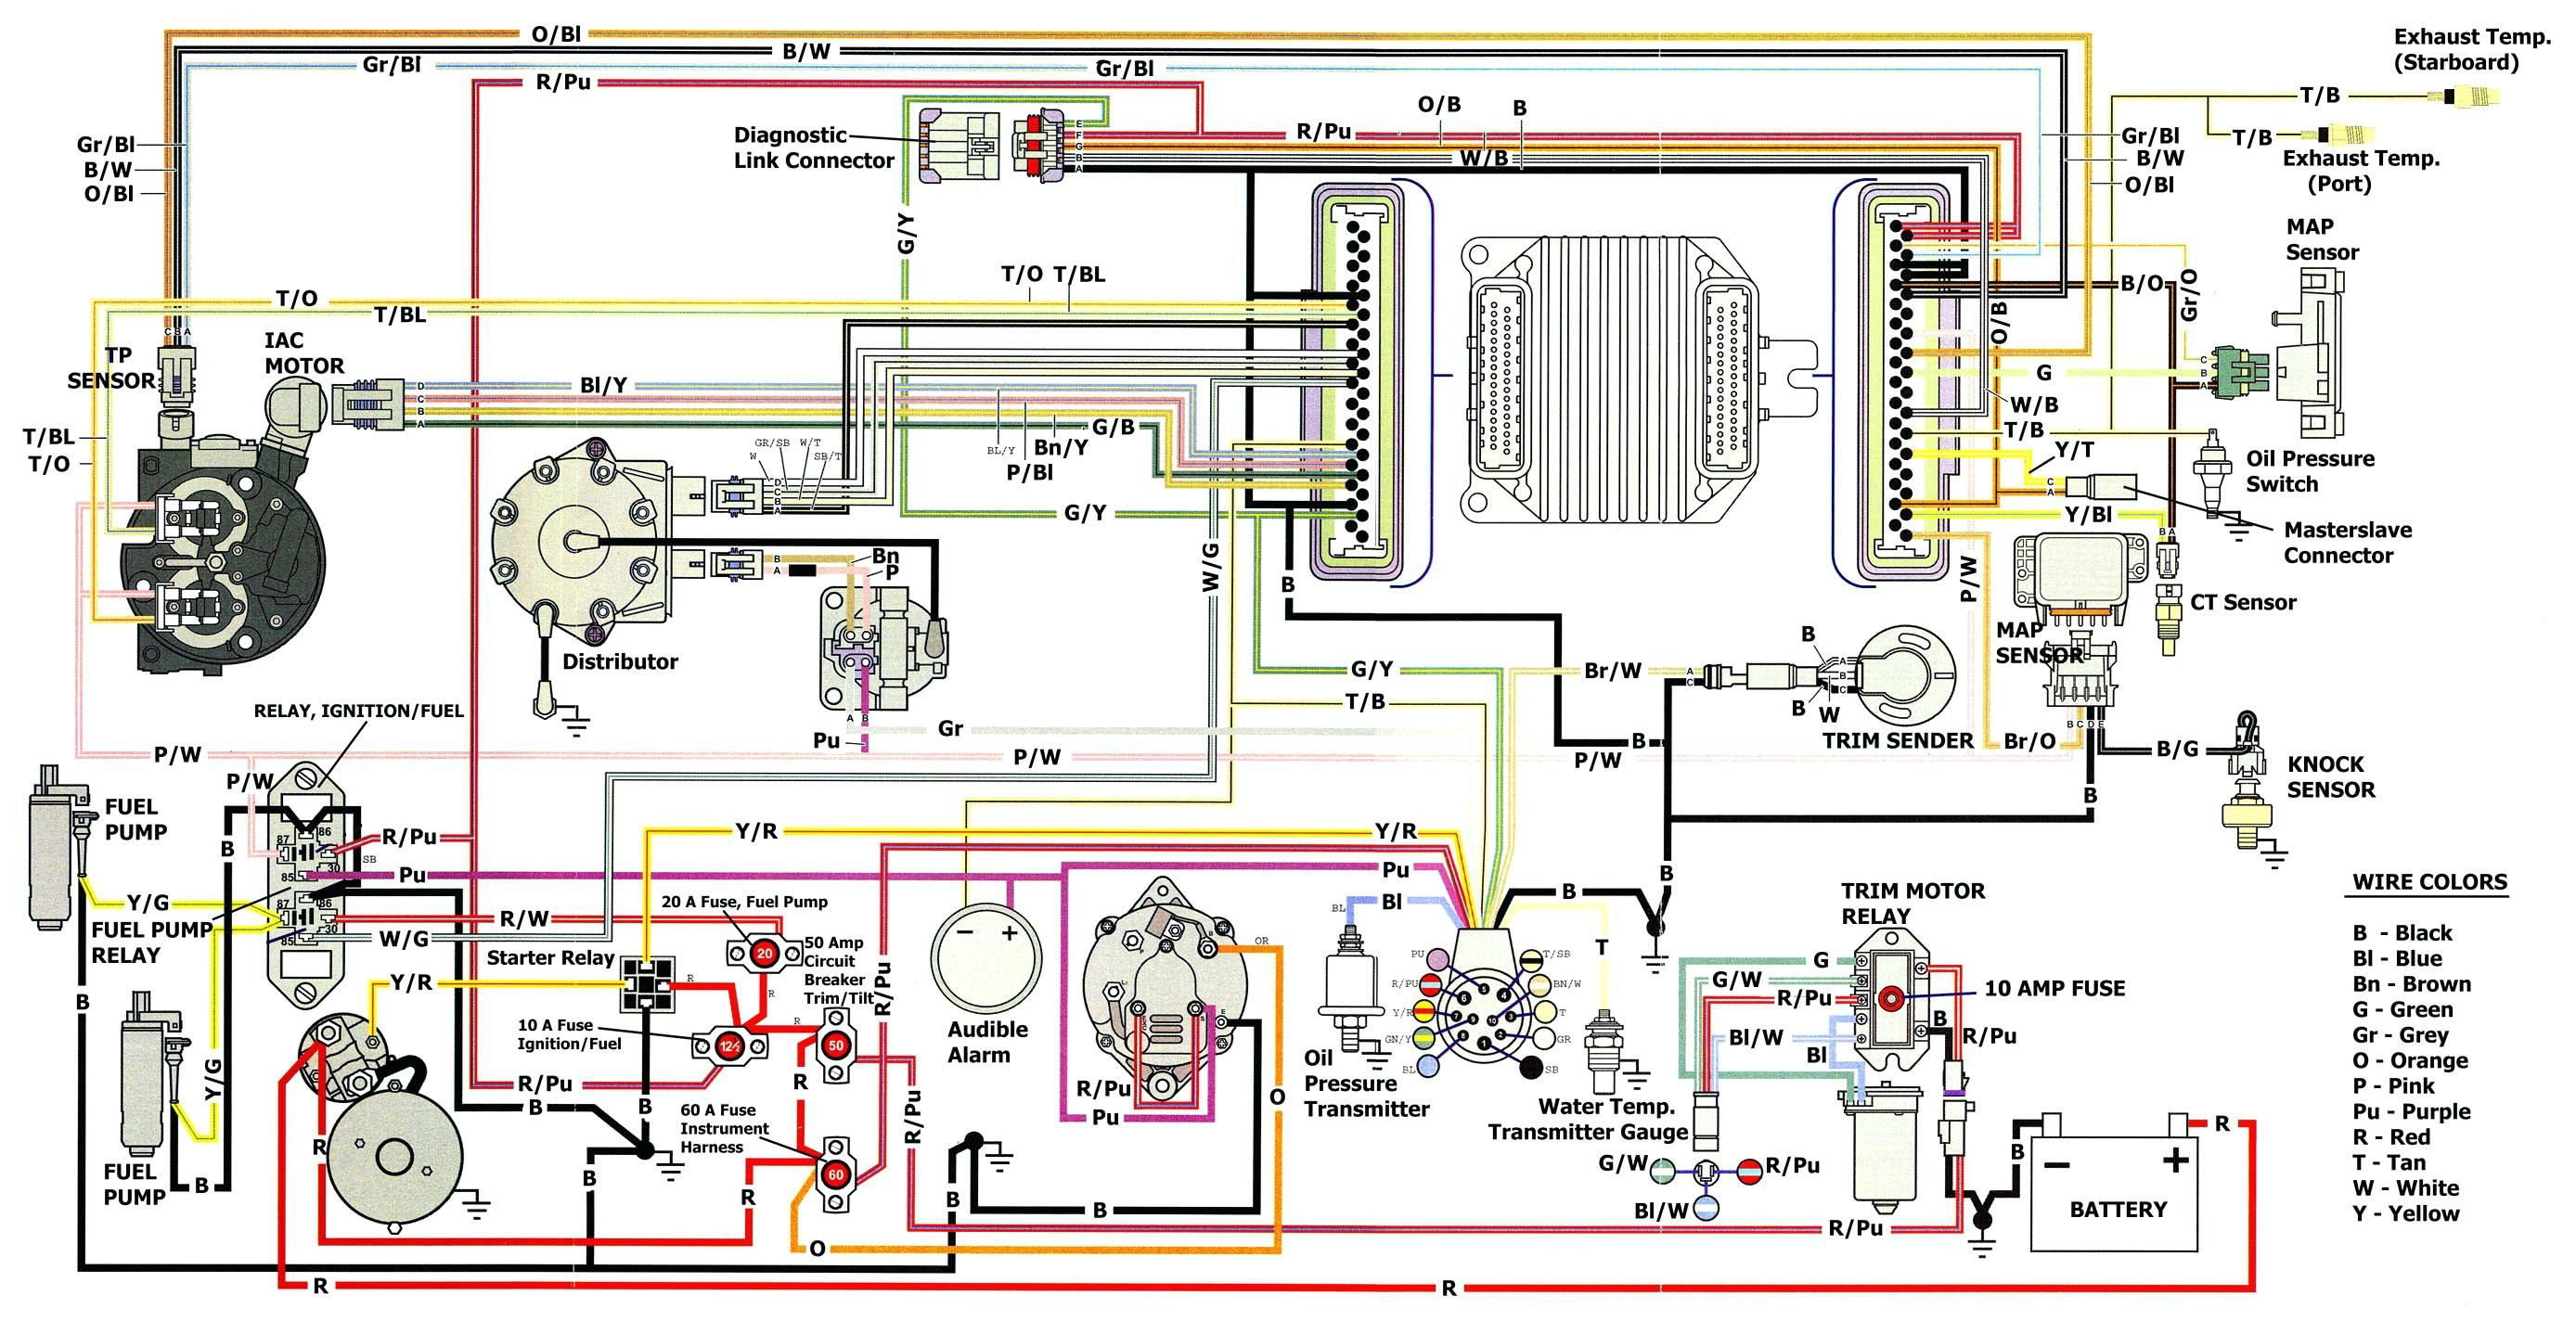 Volvo V70 Wiring Diagram - Wiring Diagram Example